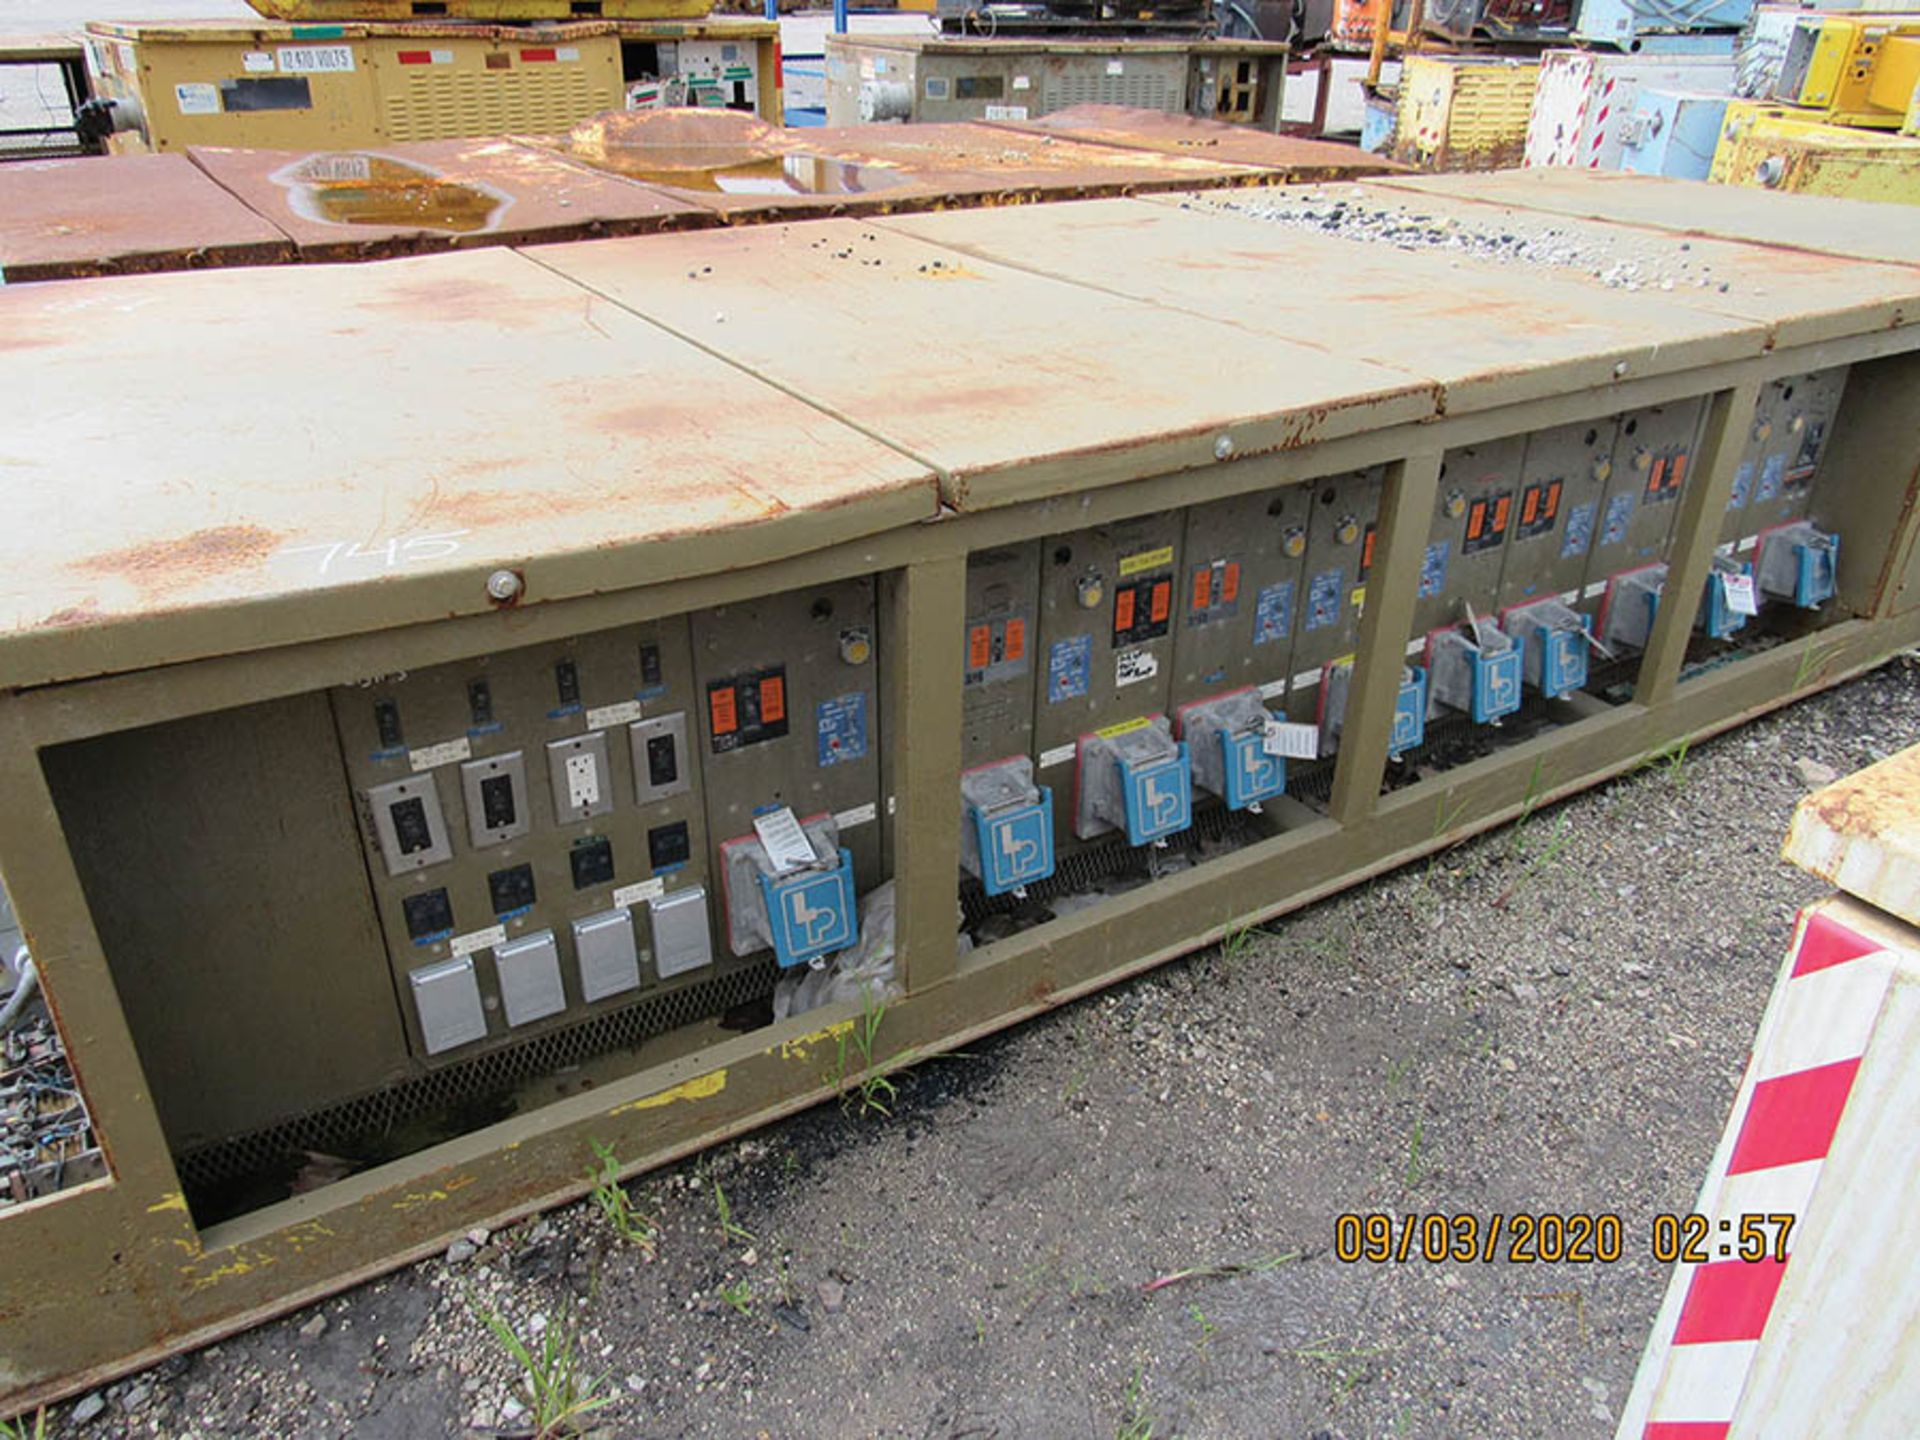 Lot 745 - LINE POWER CO POWER CENTER, S/N R1138, 12470 VAC 30 60HZ IN, AC OUTPUT 480V 30 60HZ